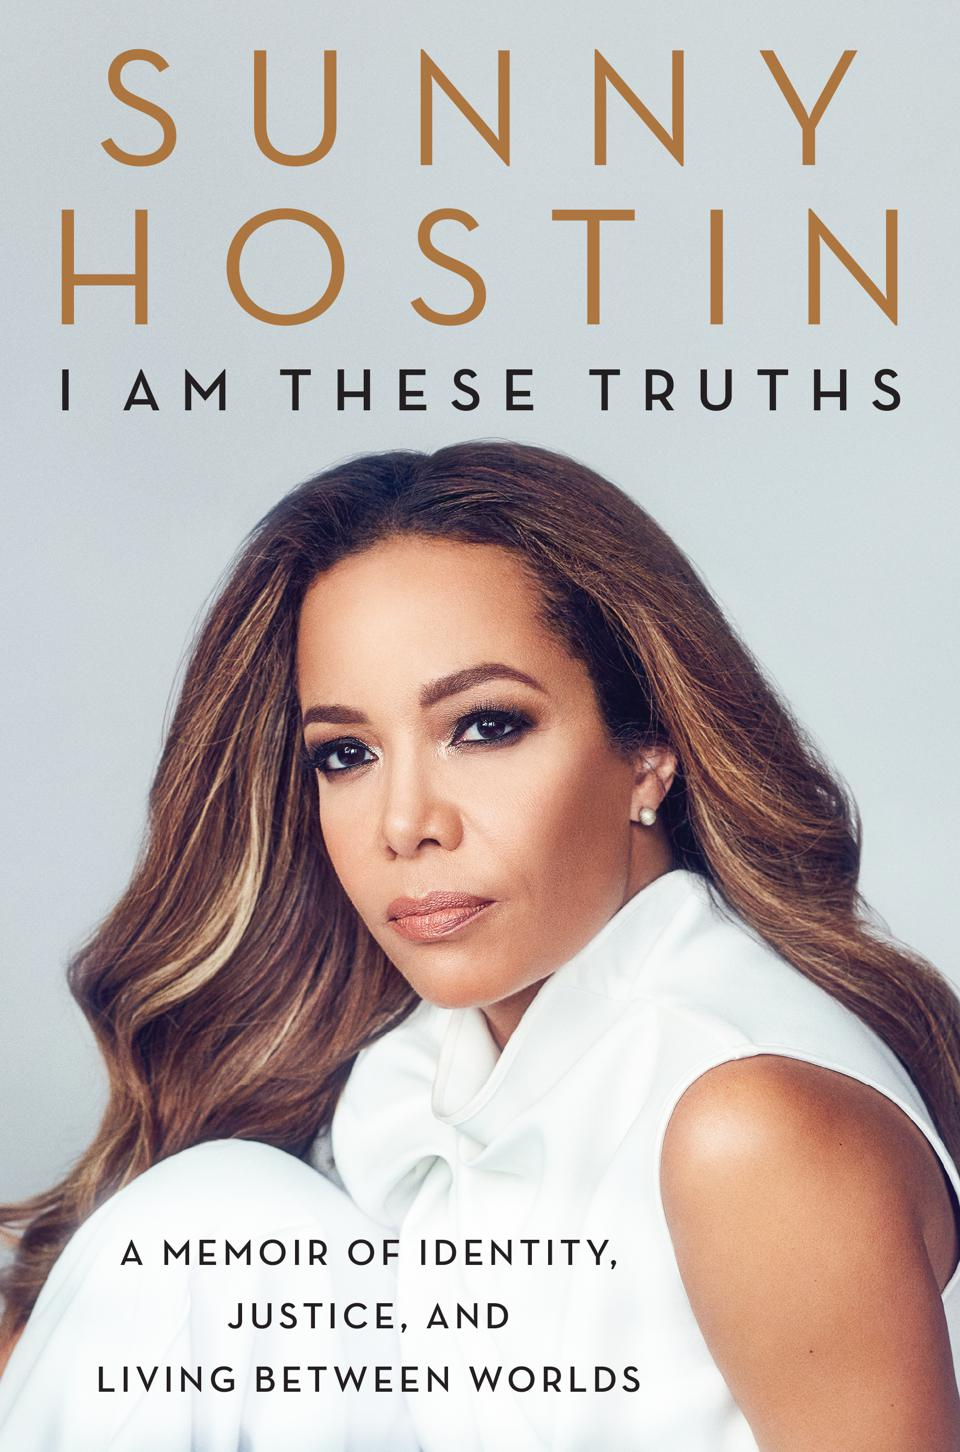 I Am These Truth by Sunny Hostin